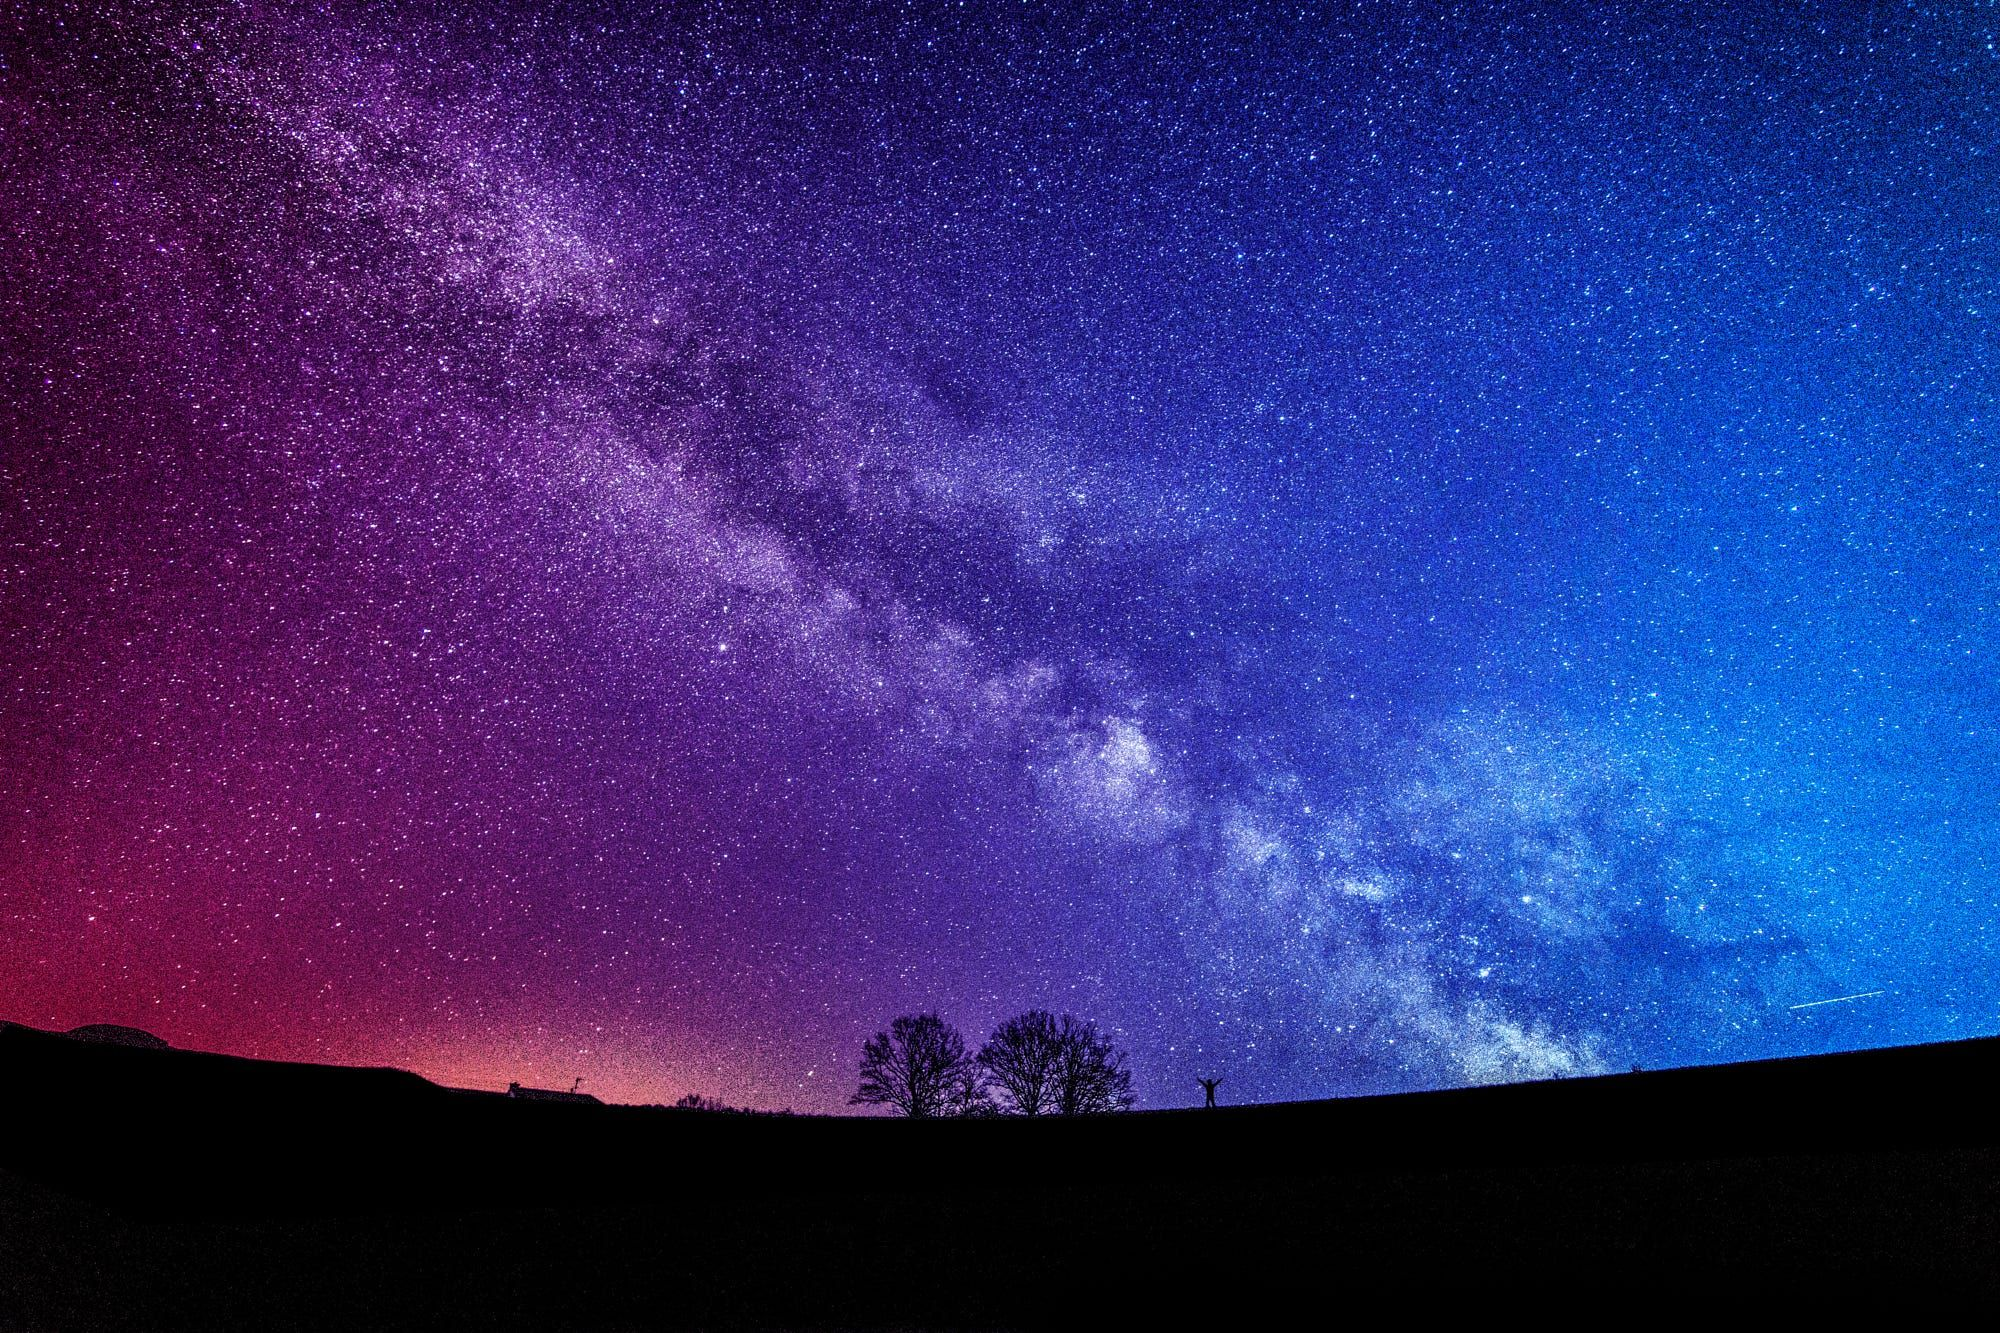 Milky way for the first time this year at around 4am in Austria